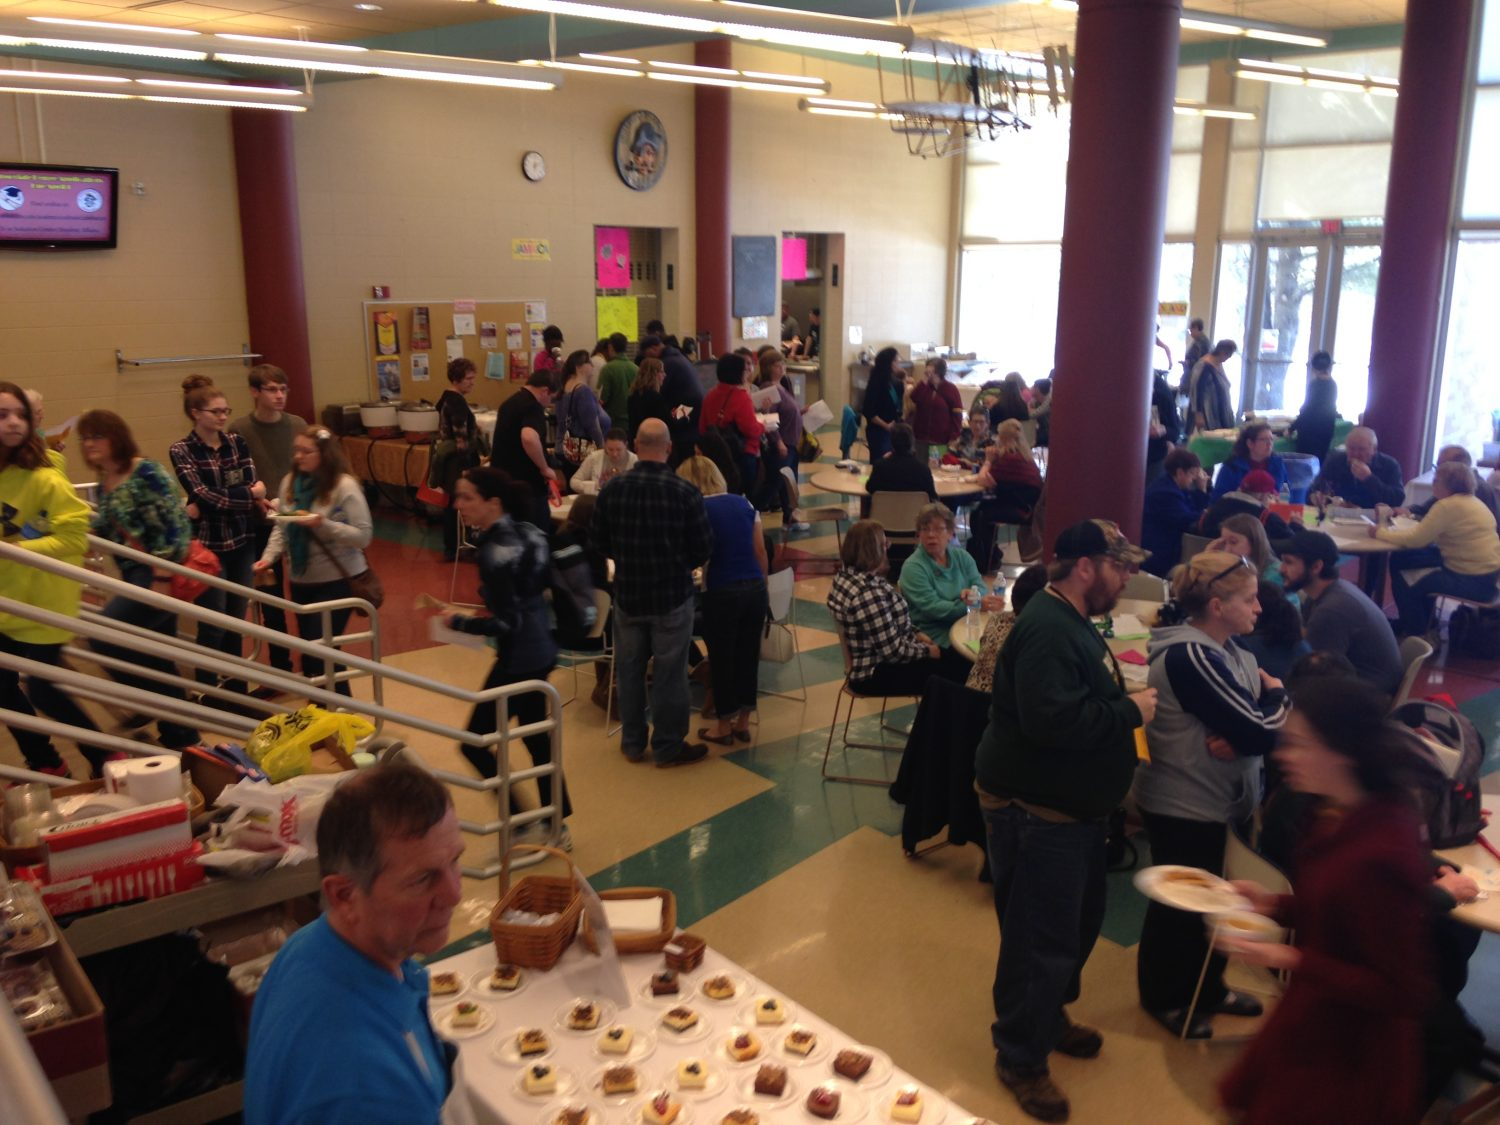 The 2016 Marshfield Cultural Fair was held at UW-Marshfield/Wood County on Feb. 27. (Nicole Dostal photos)